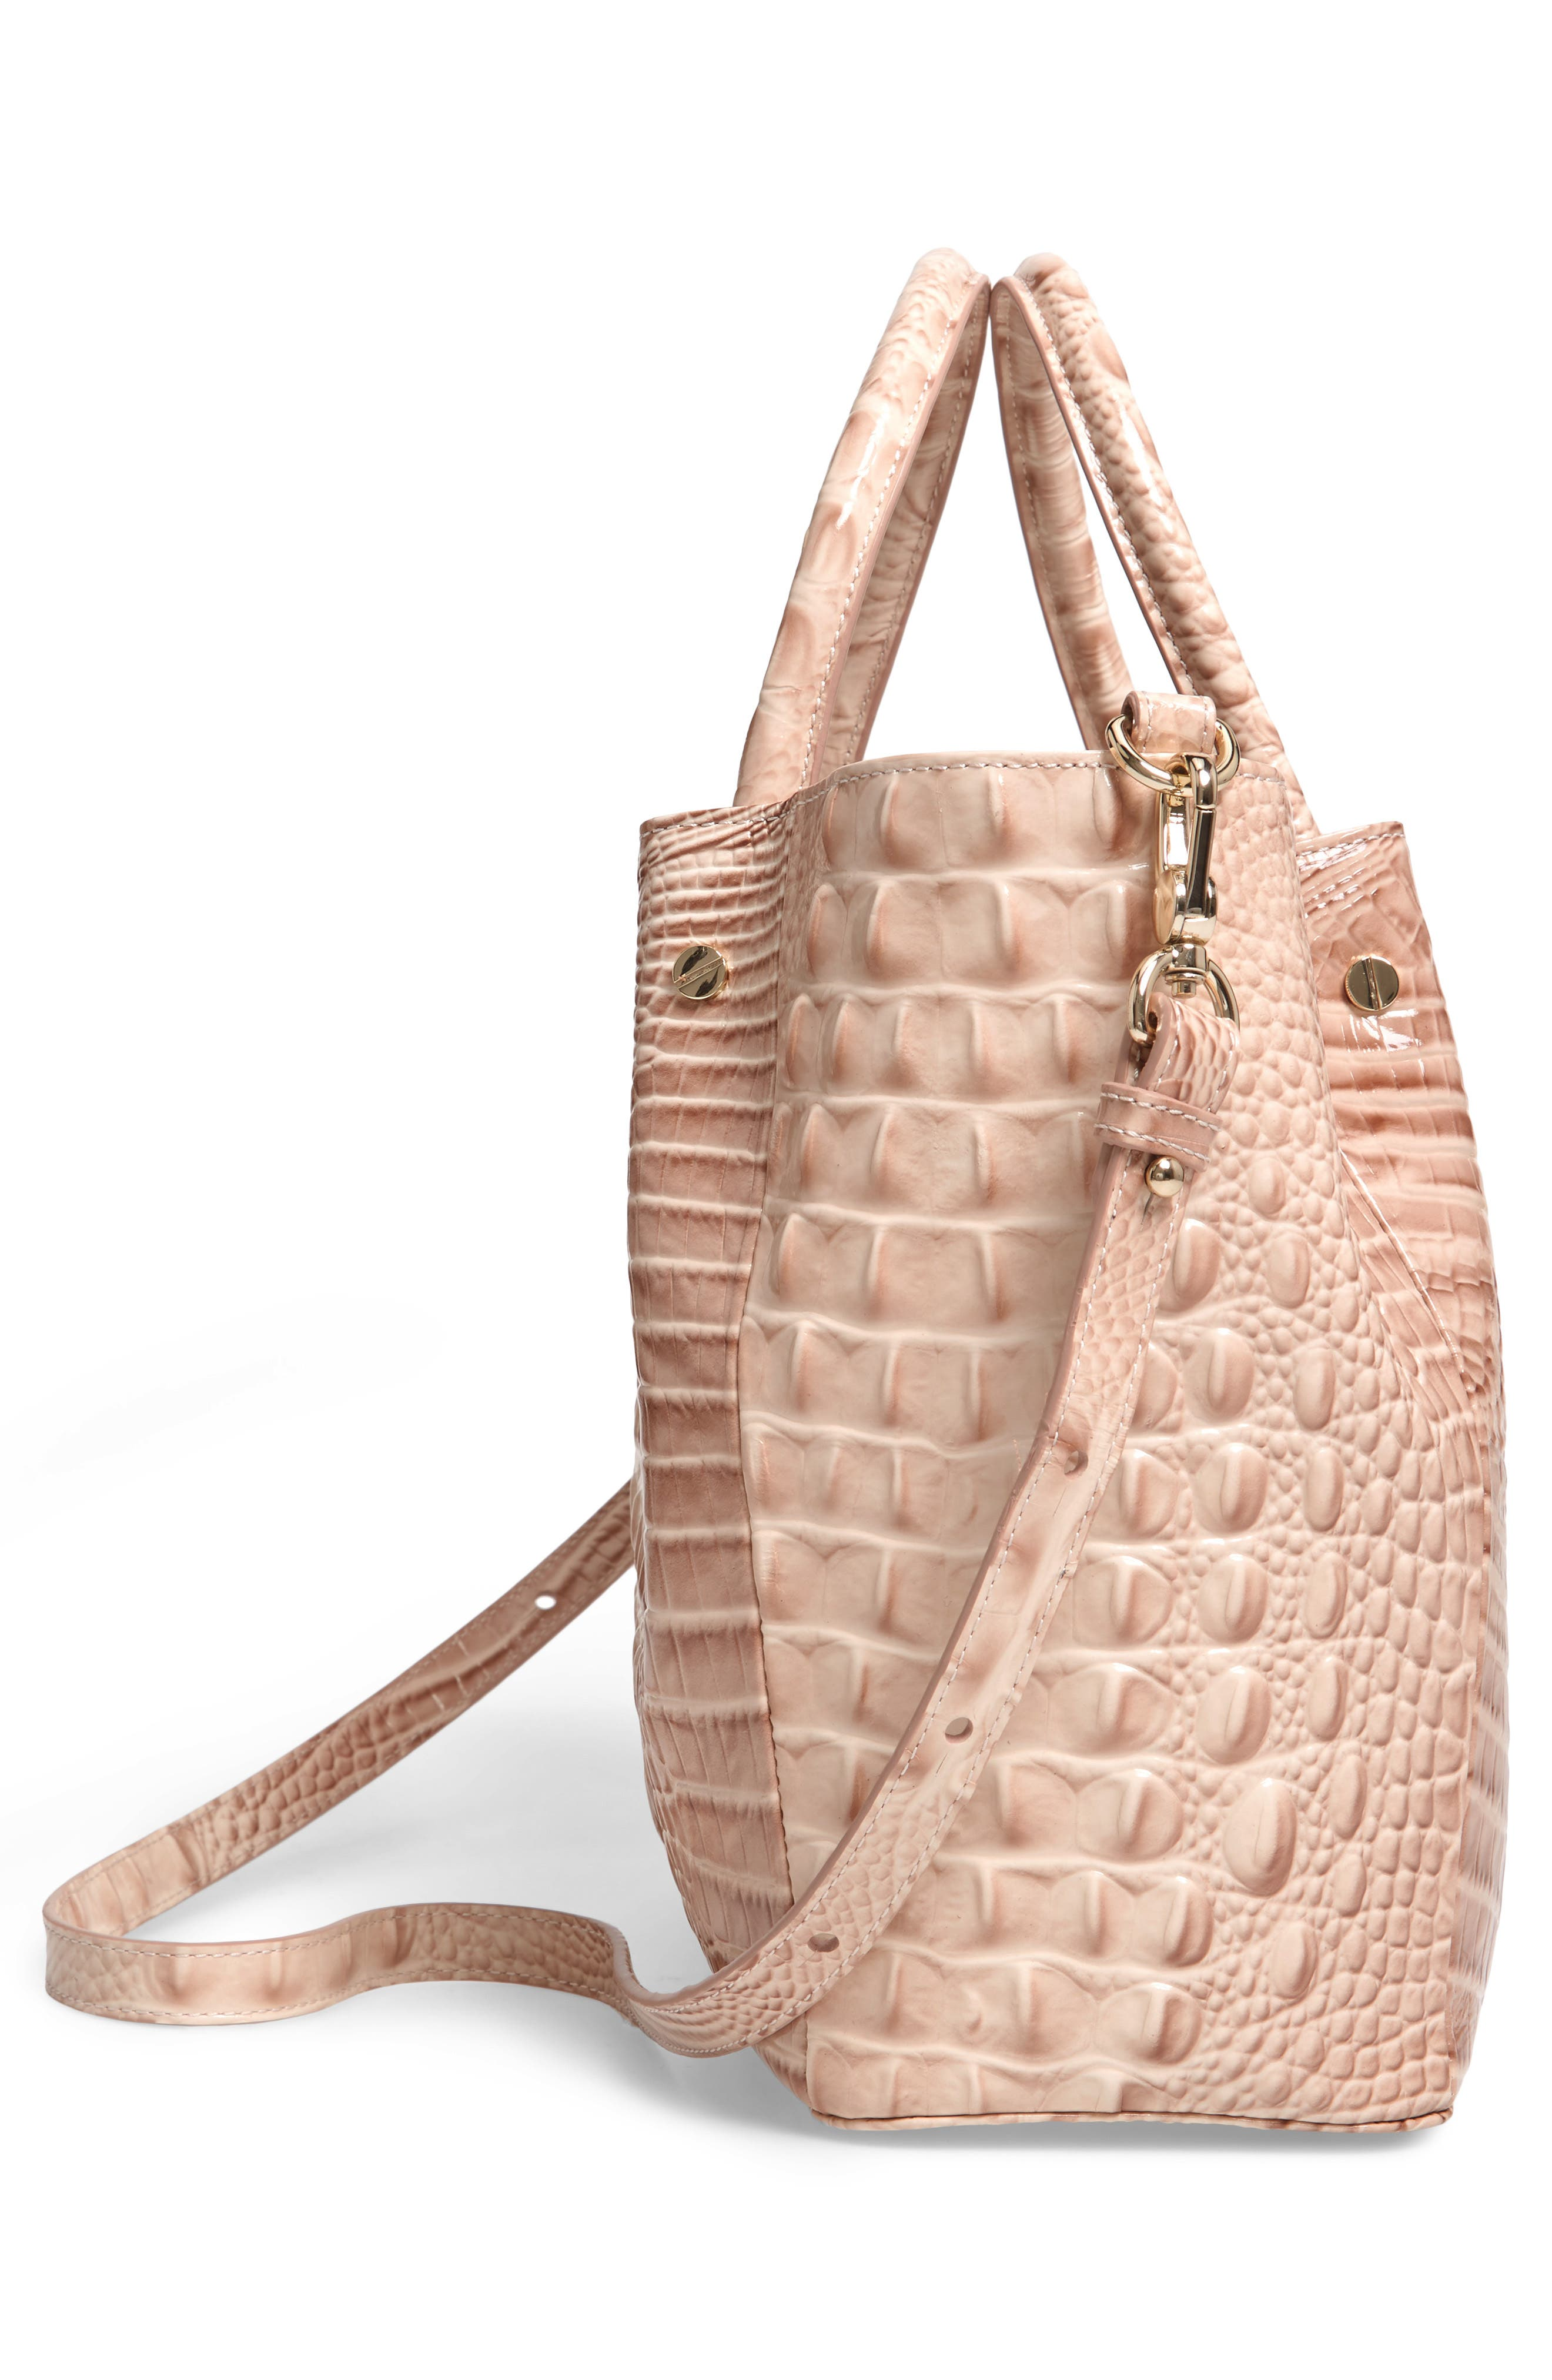 BRAHMIN, Small Mallory Croc Embossed Leather Satchel, Alternate thumbnail 6, color, 650